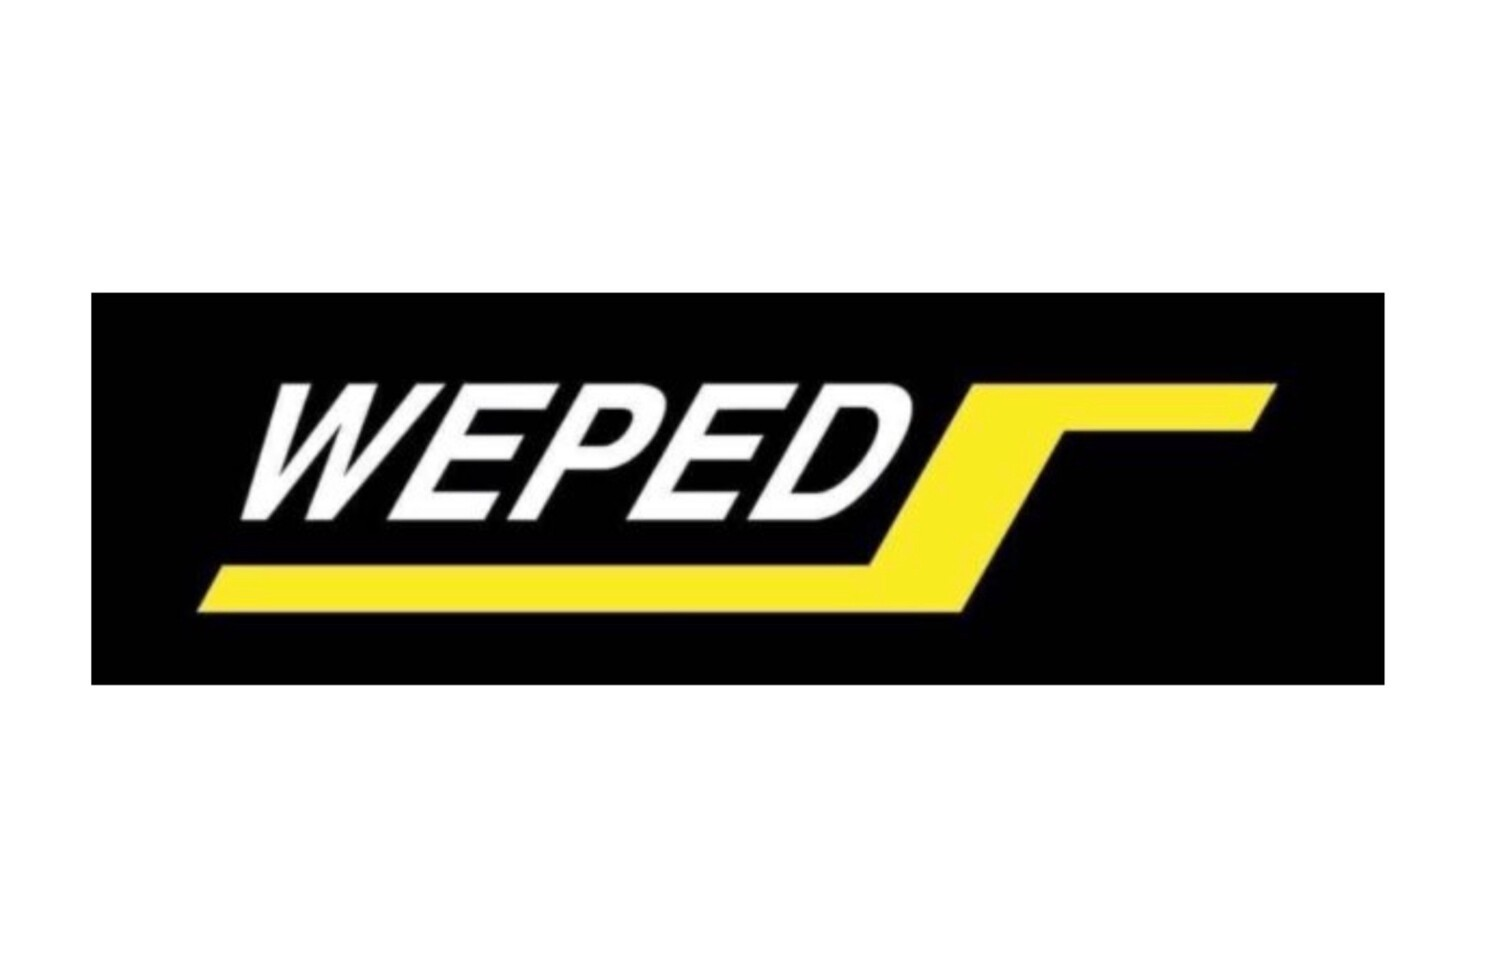 Weped